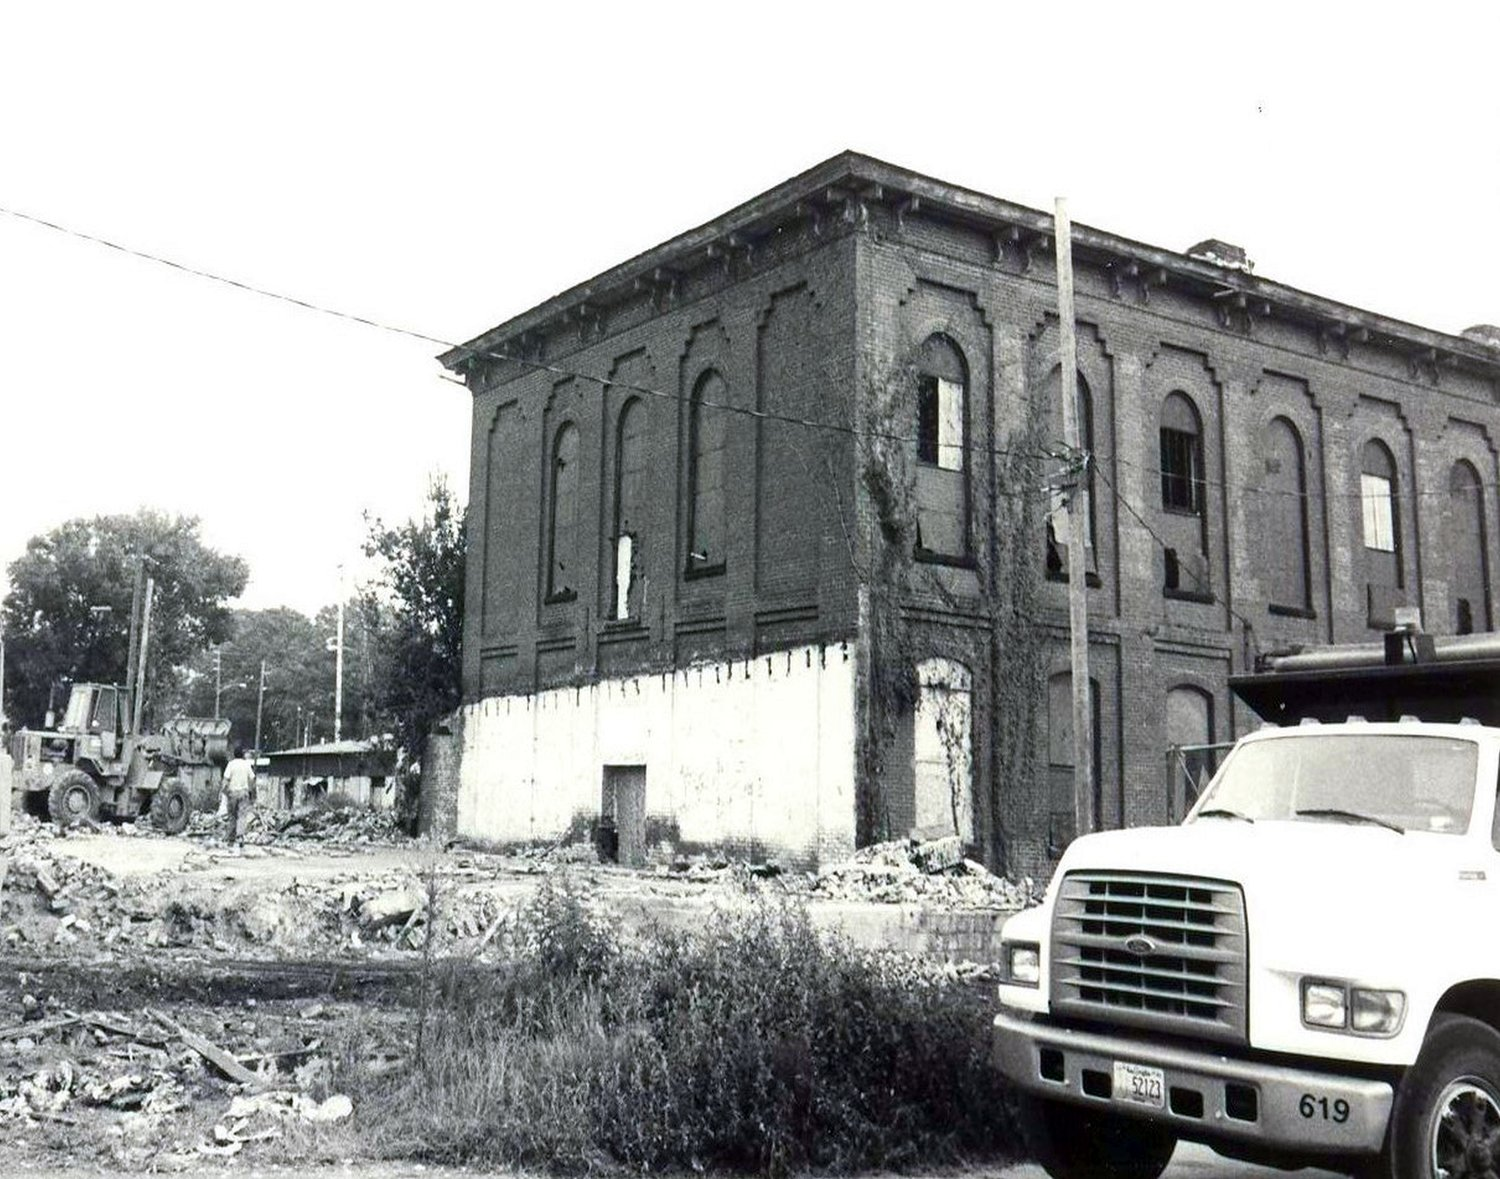 Around 1990, an addition to the 1869 Courthouse was demolished.